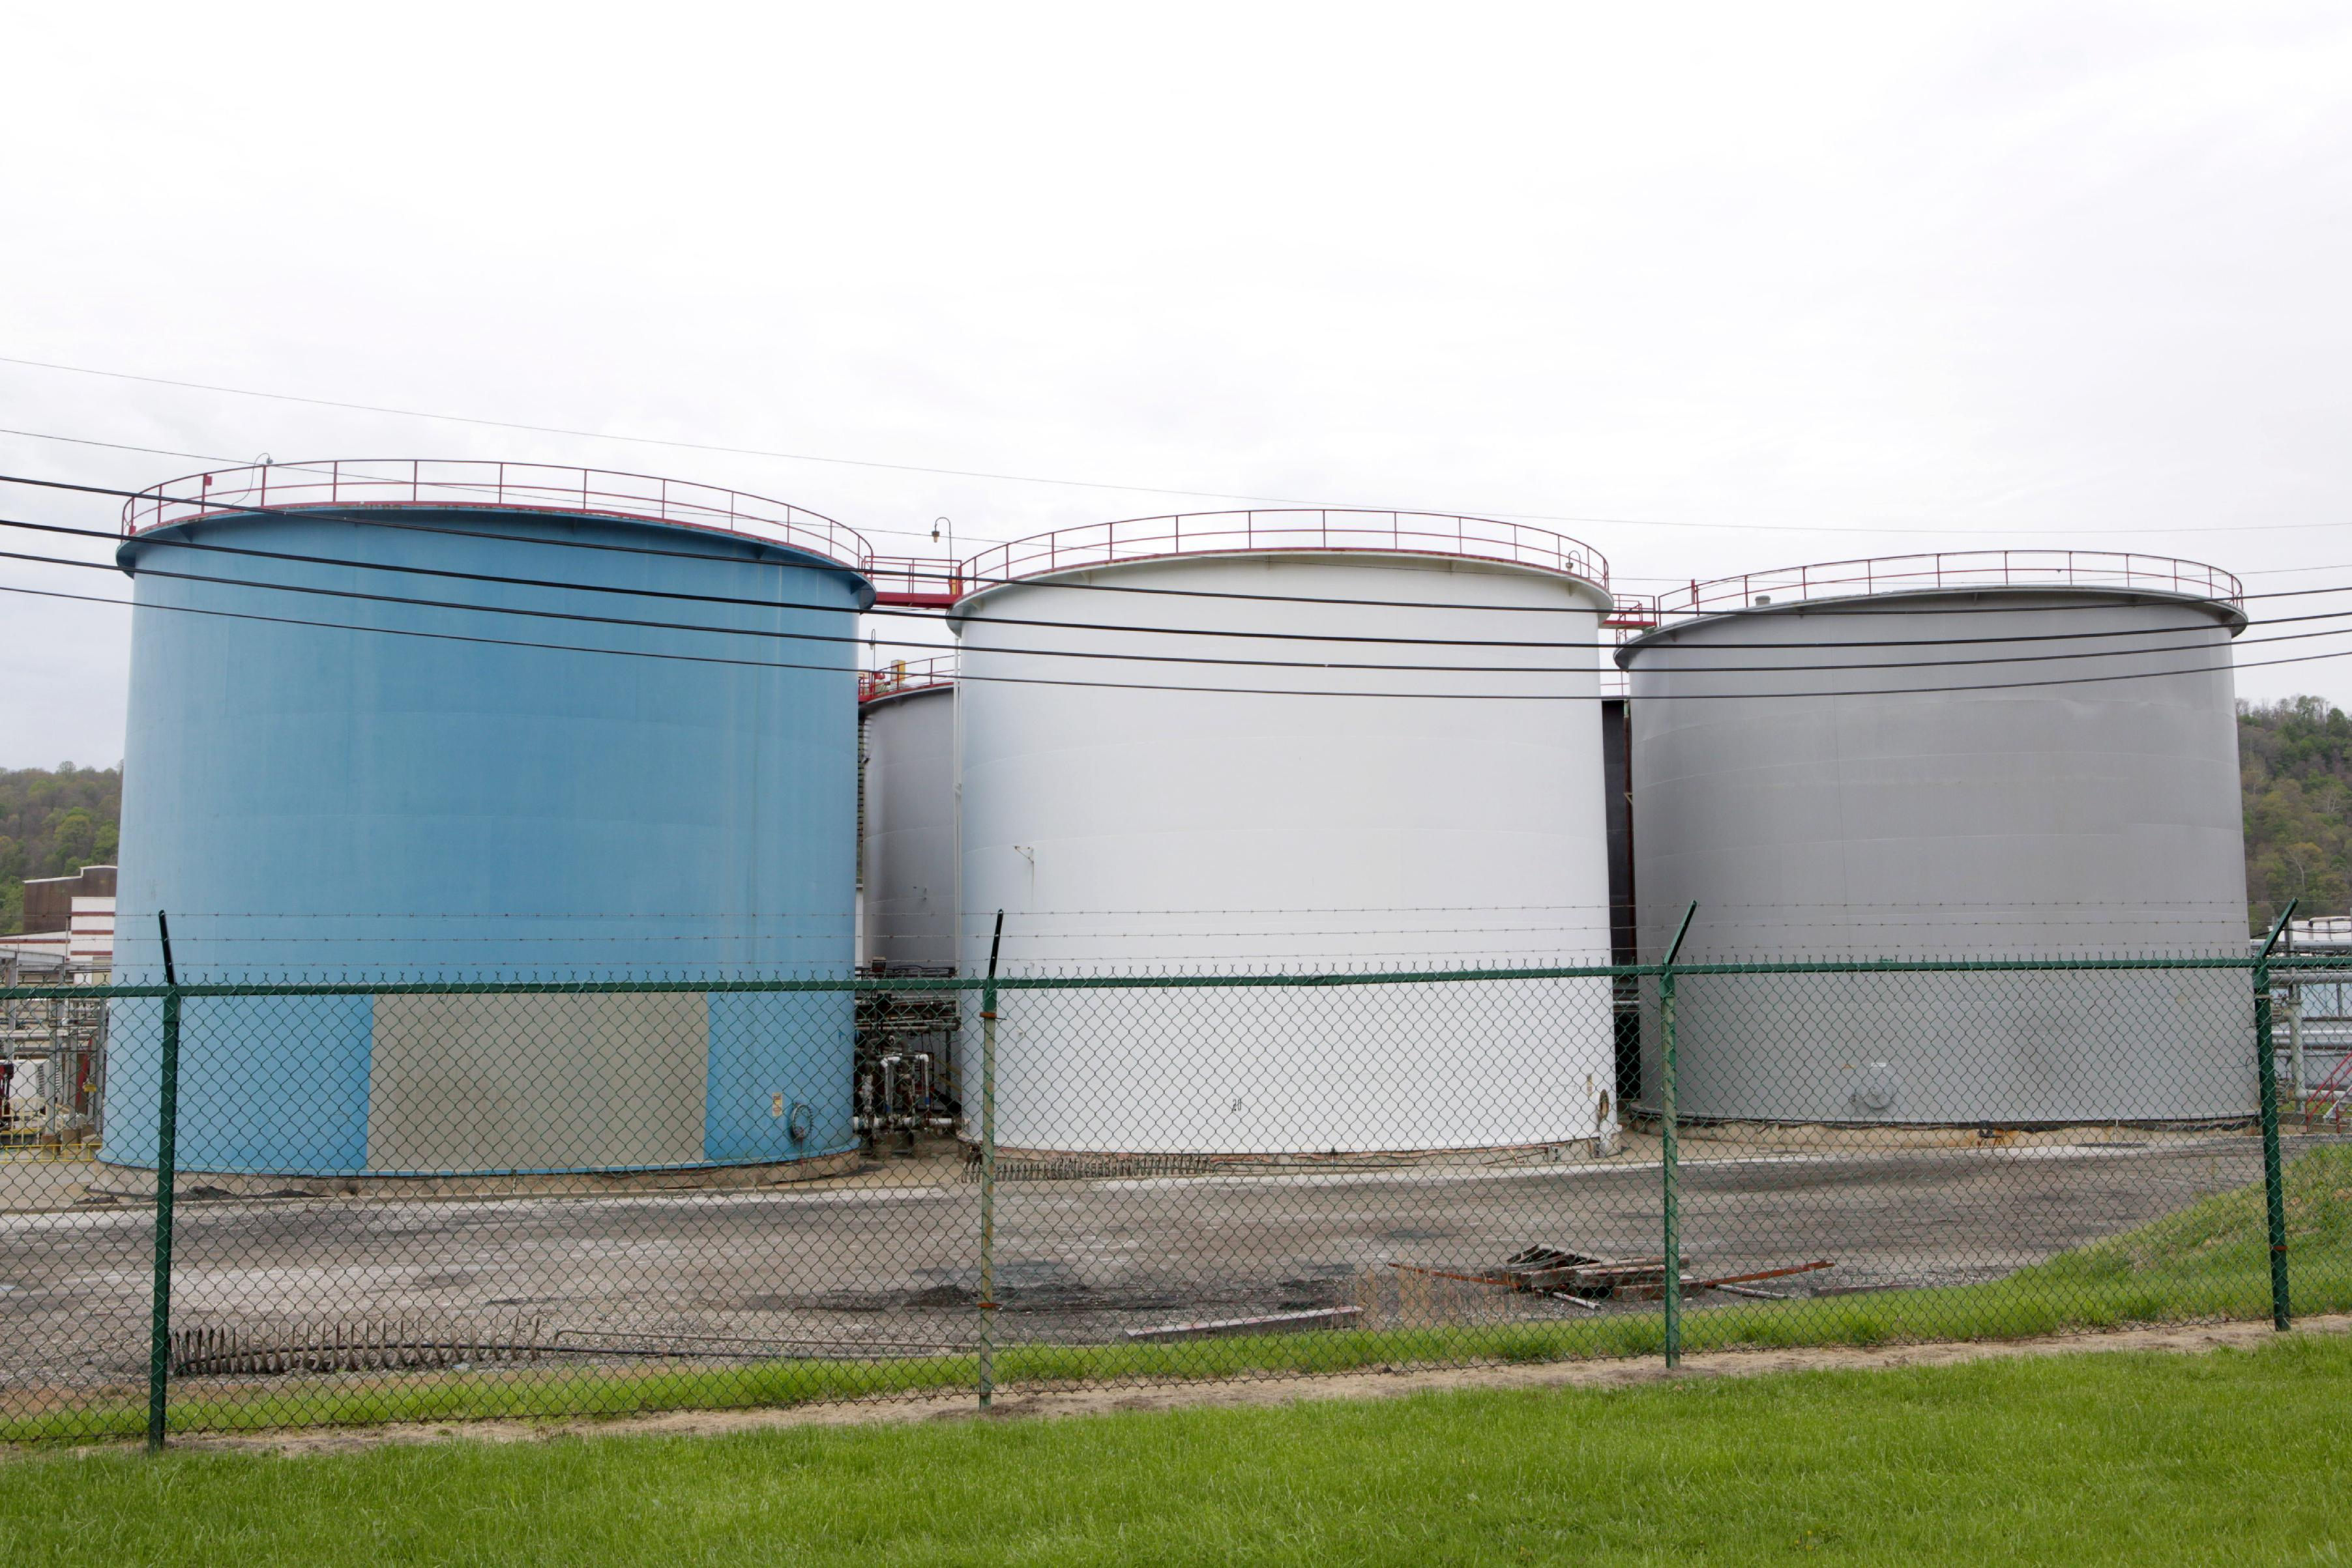 State IDs faulty tanks; now tank law is being scaled back